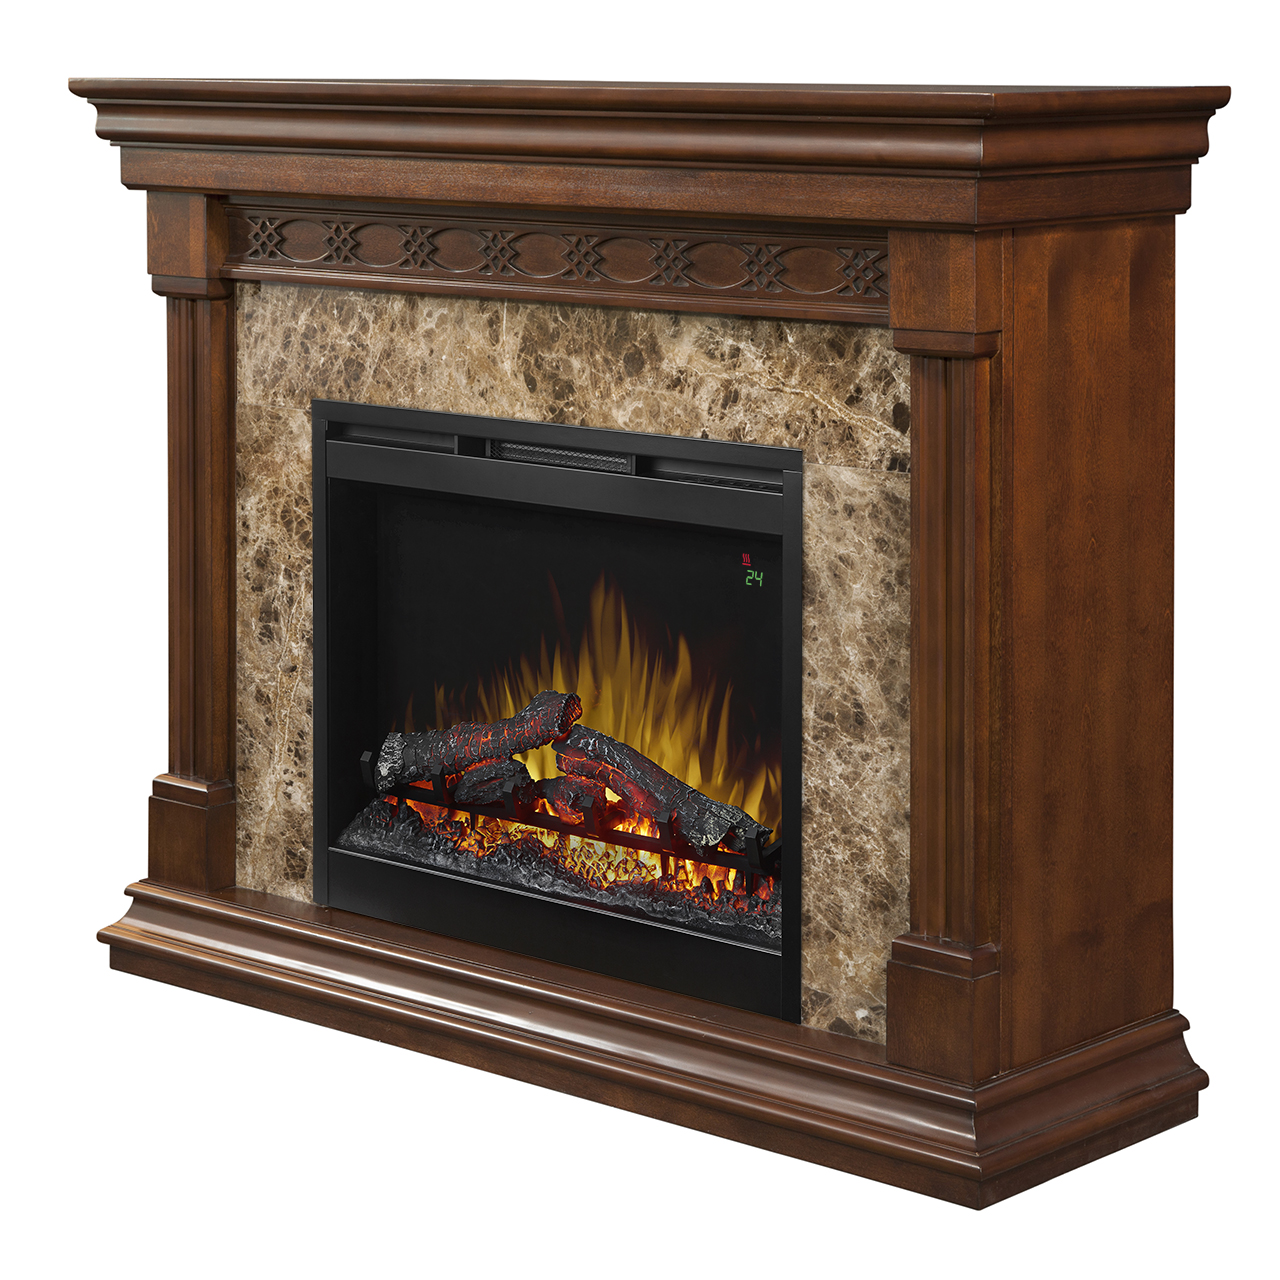 51 Dimplex Alcott Mantel Electric Fireplace